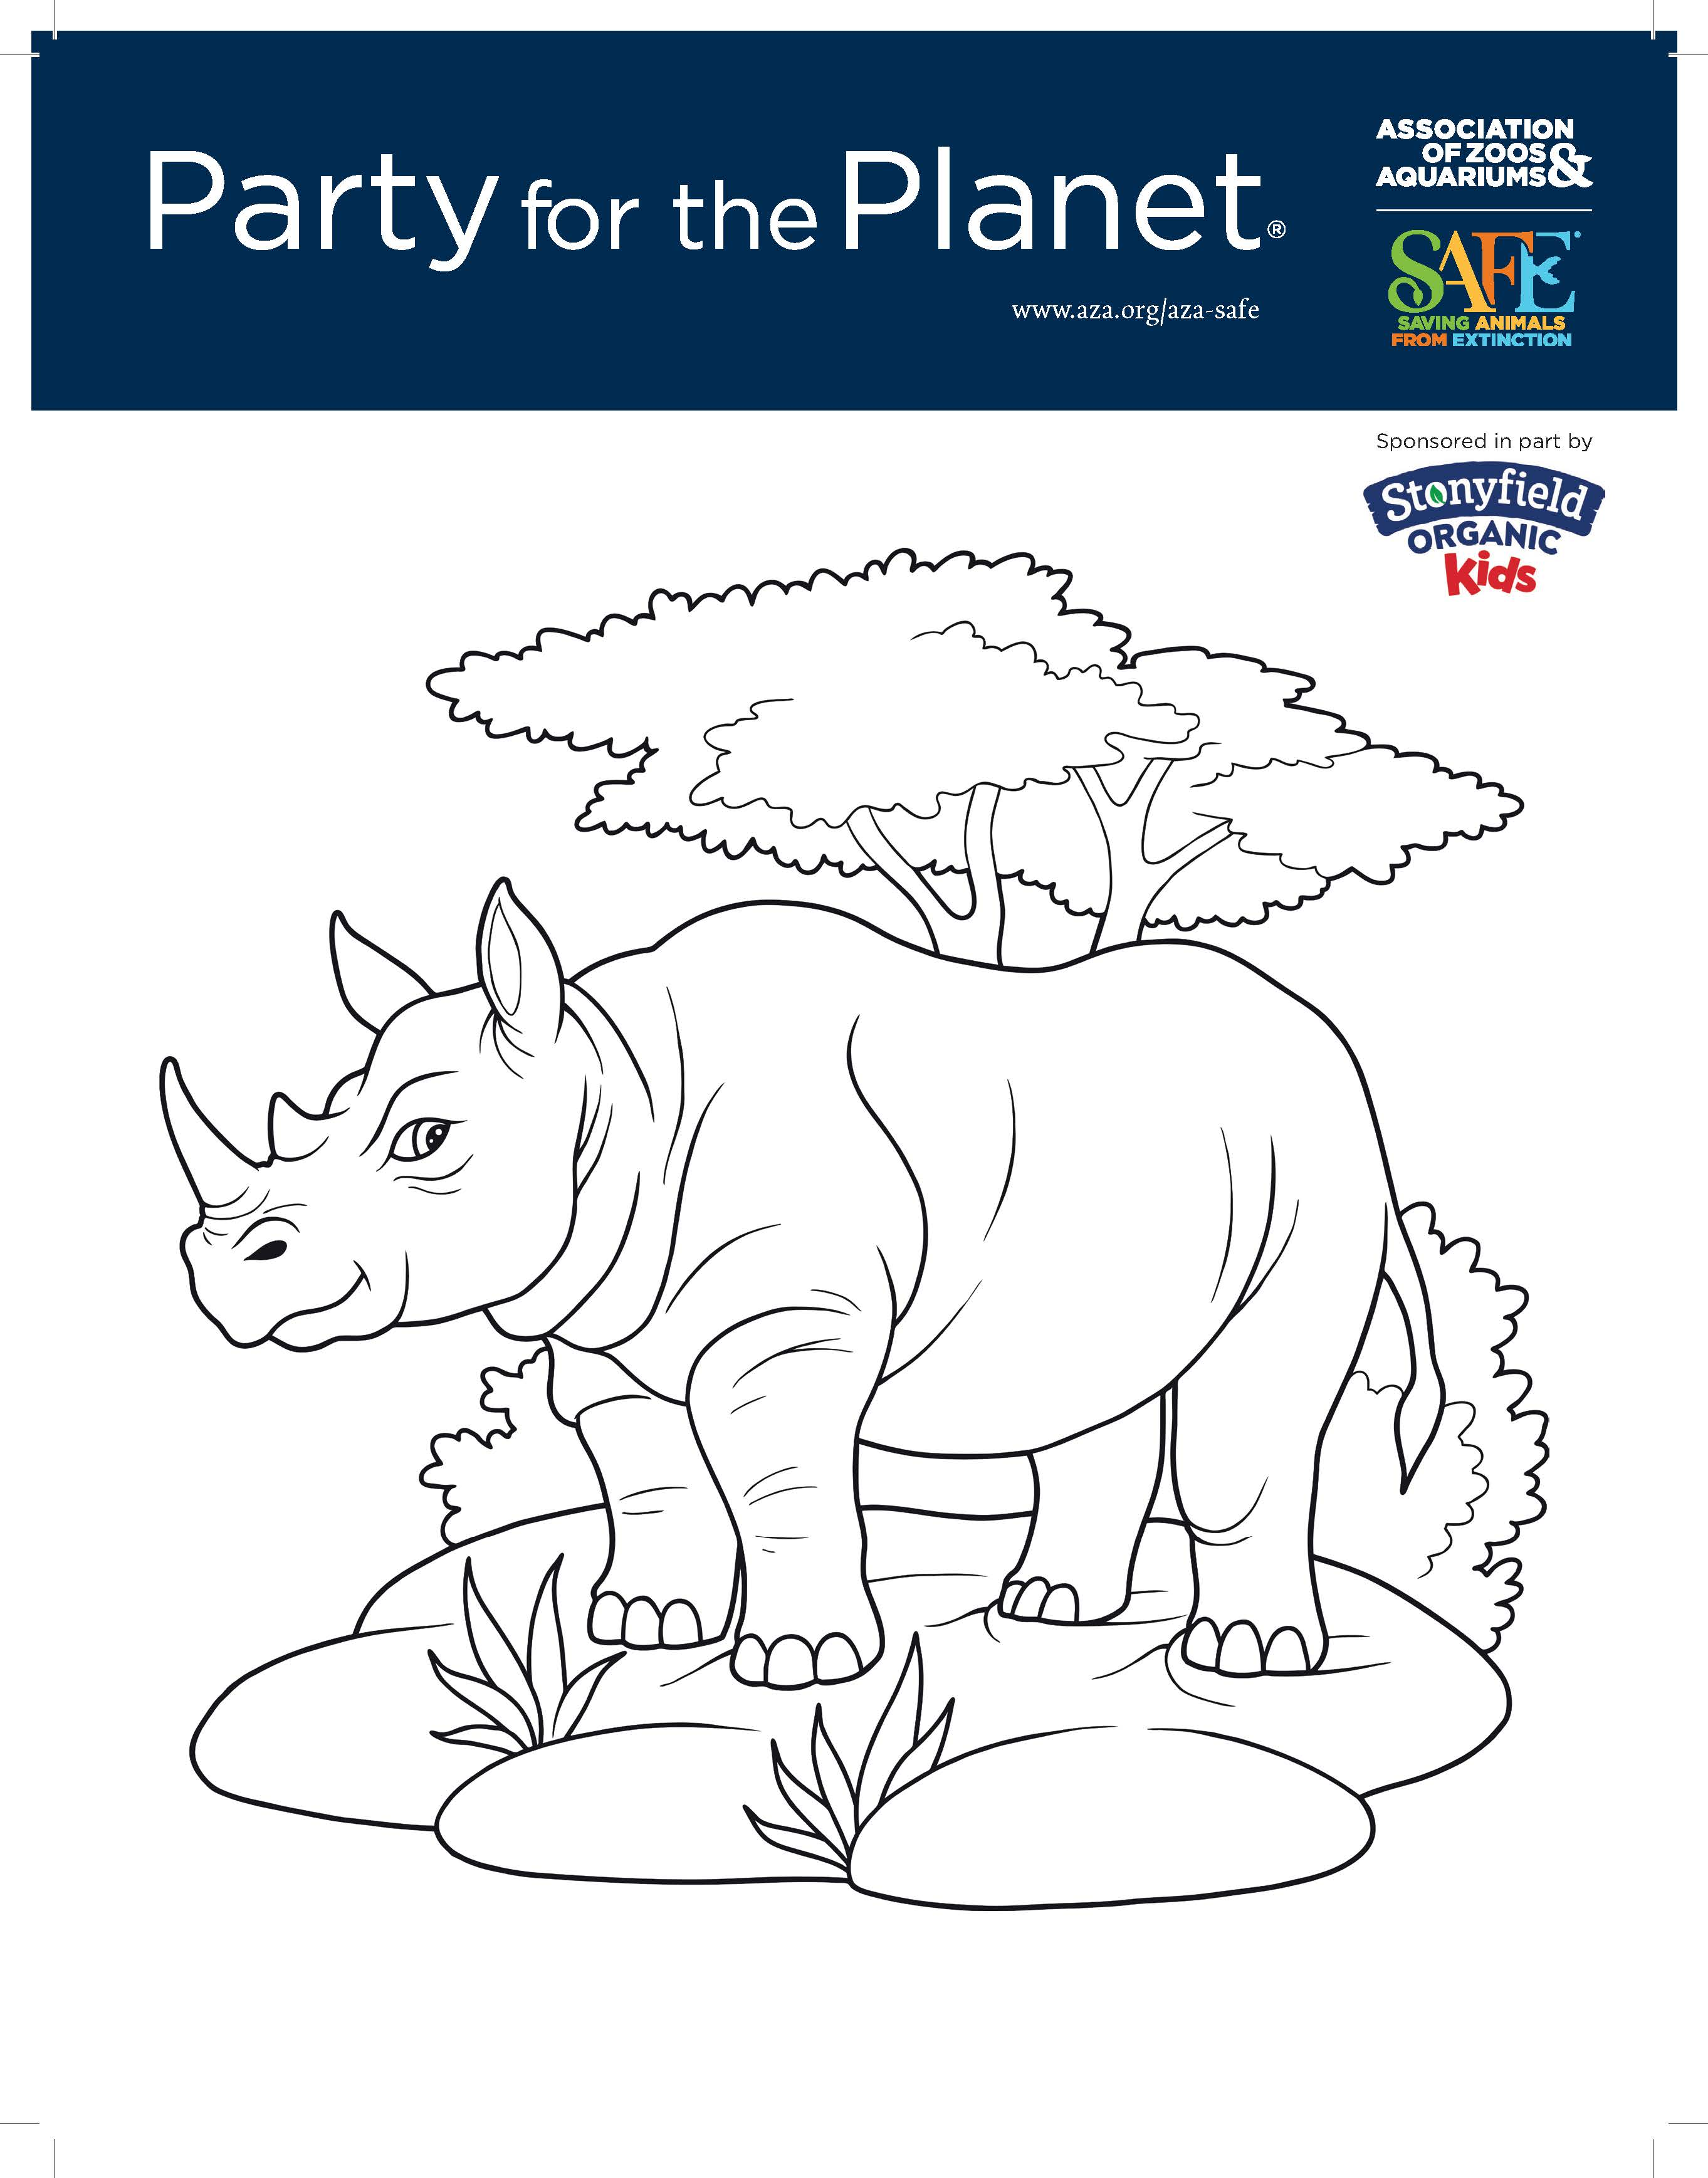 Image of and link to Party for the Planet coloring book